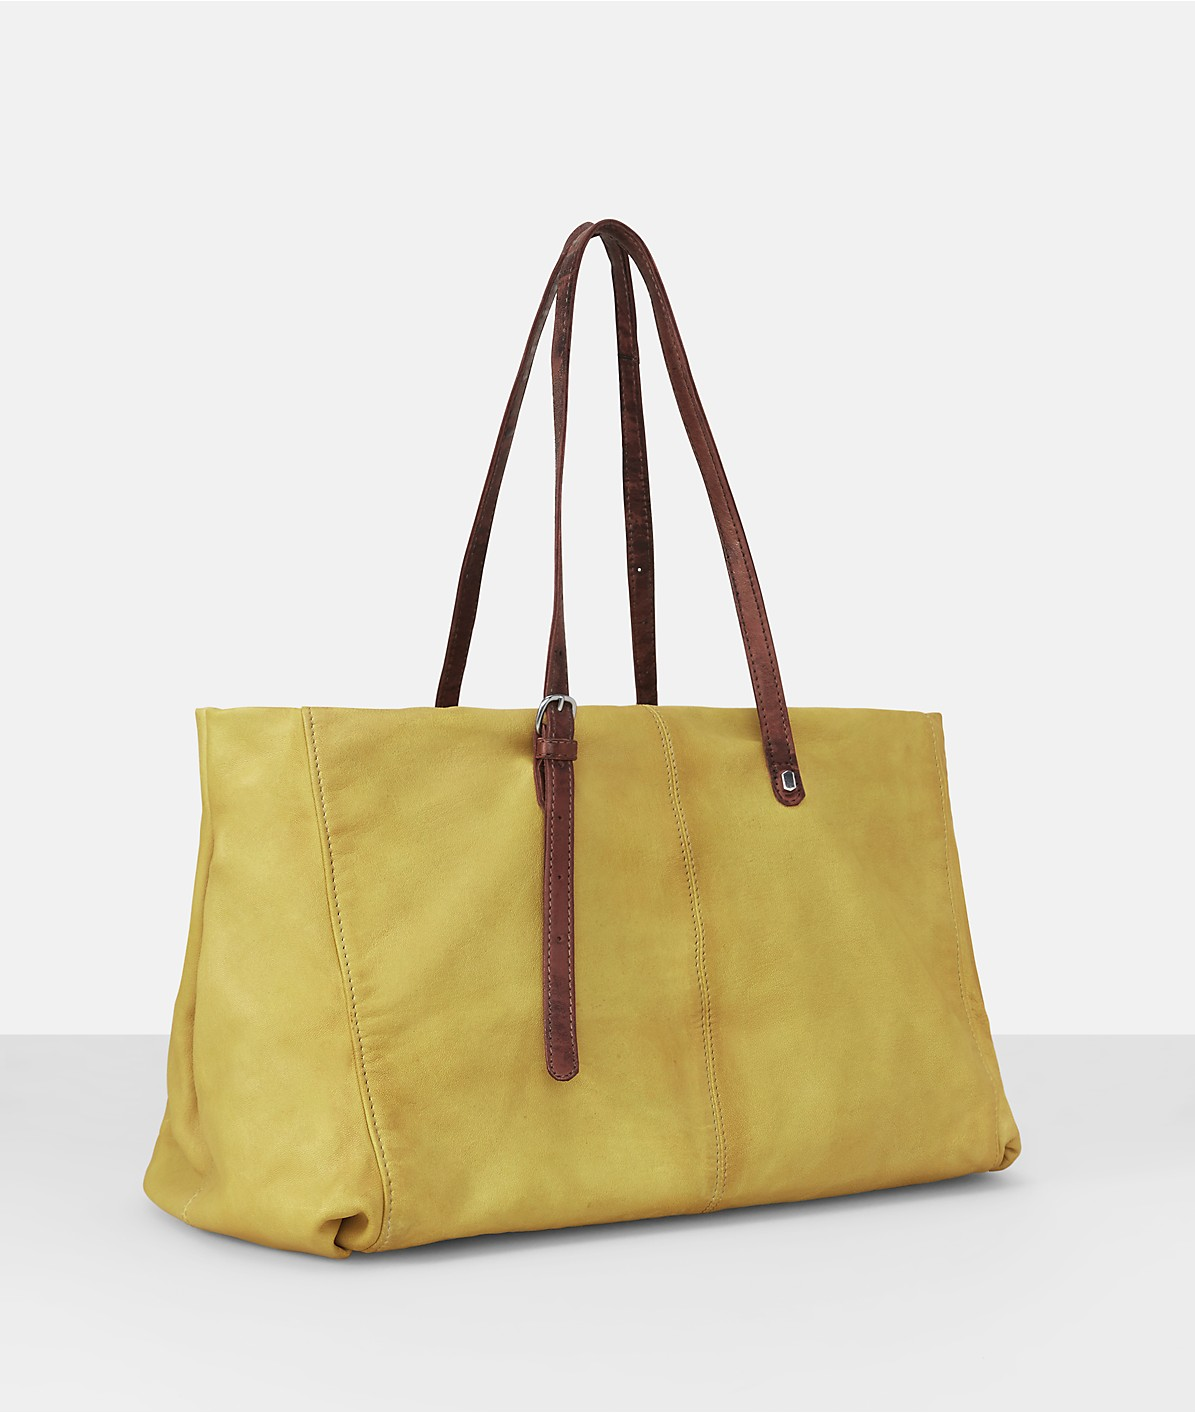 Touba shopper from liebeskind